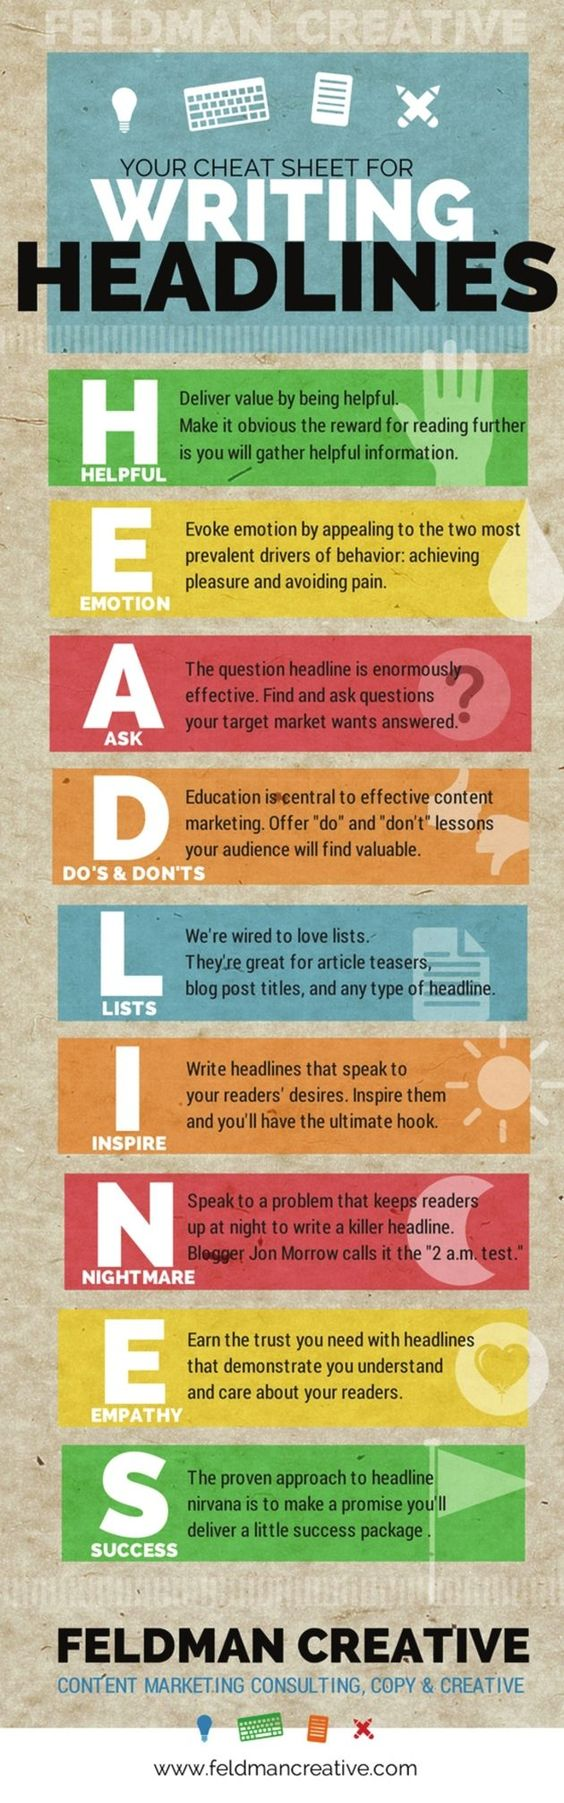 Writing - How do you get your headlines to inspire a click? Here's a cheat sheet that spells out nine effective tips based on the nine letters in the word headlines.